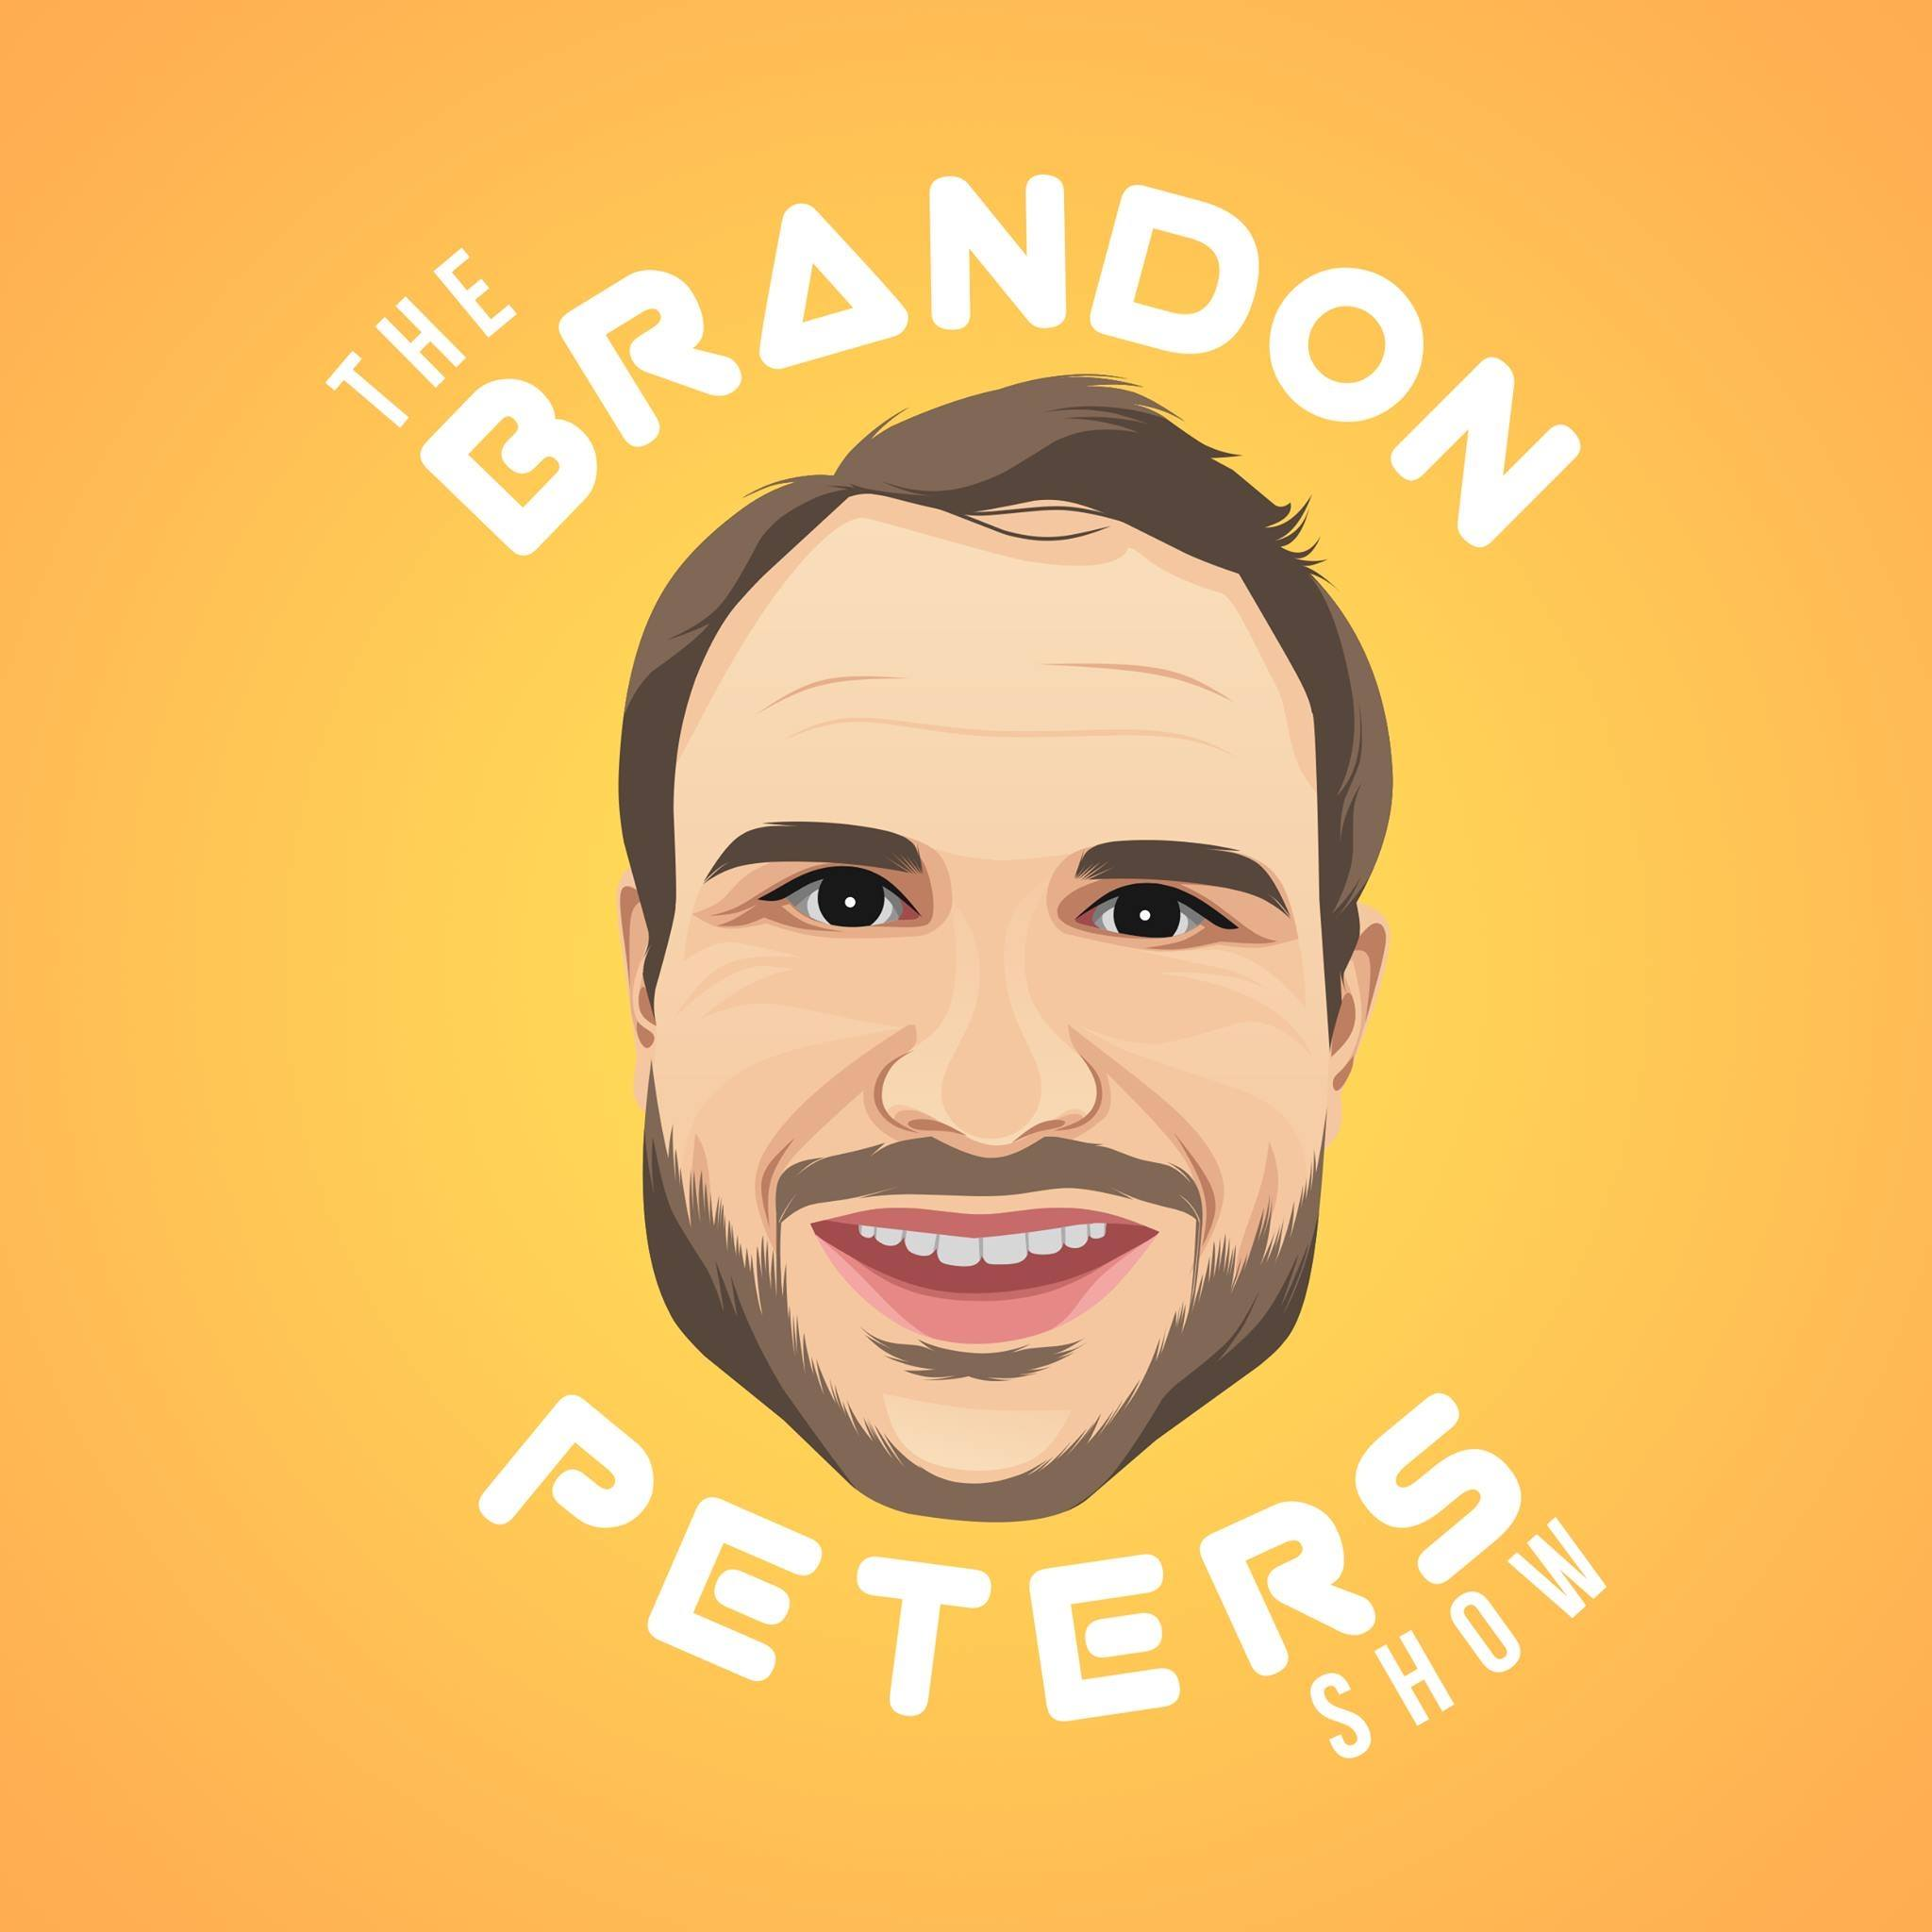 Episode 260 Brandon Peters show art